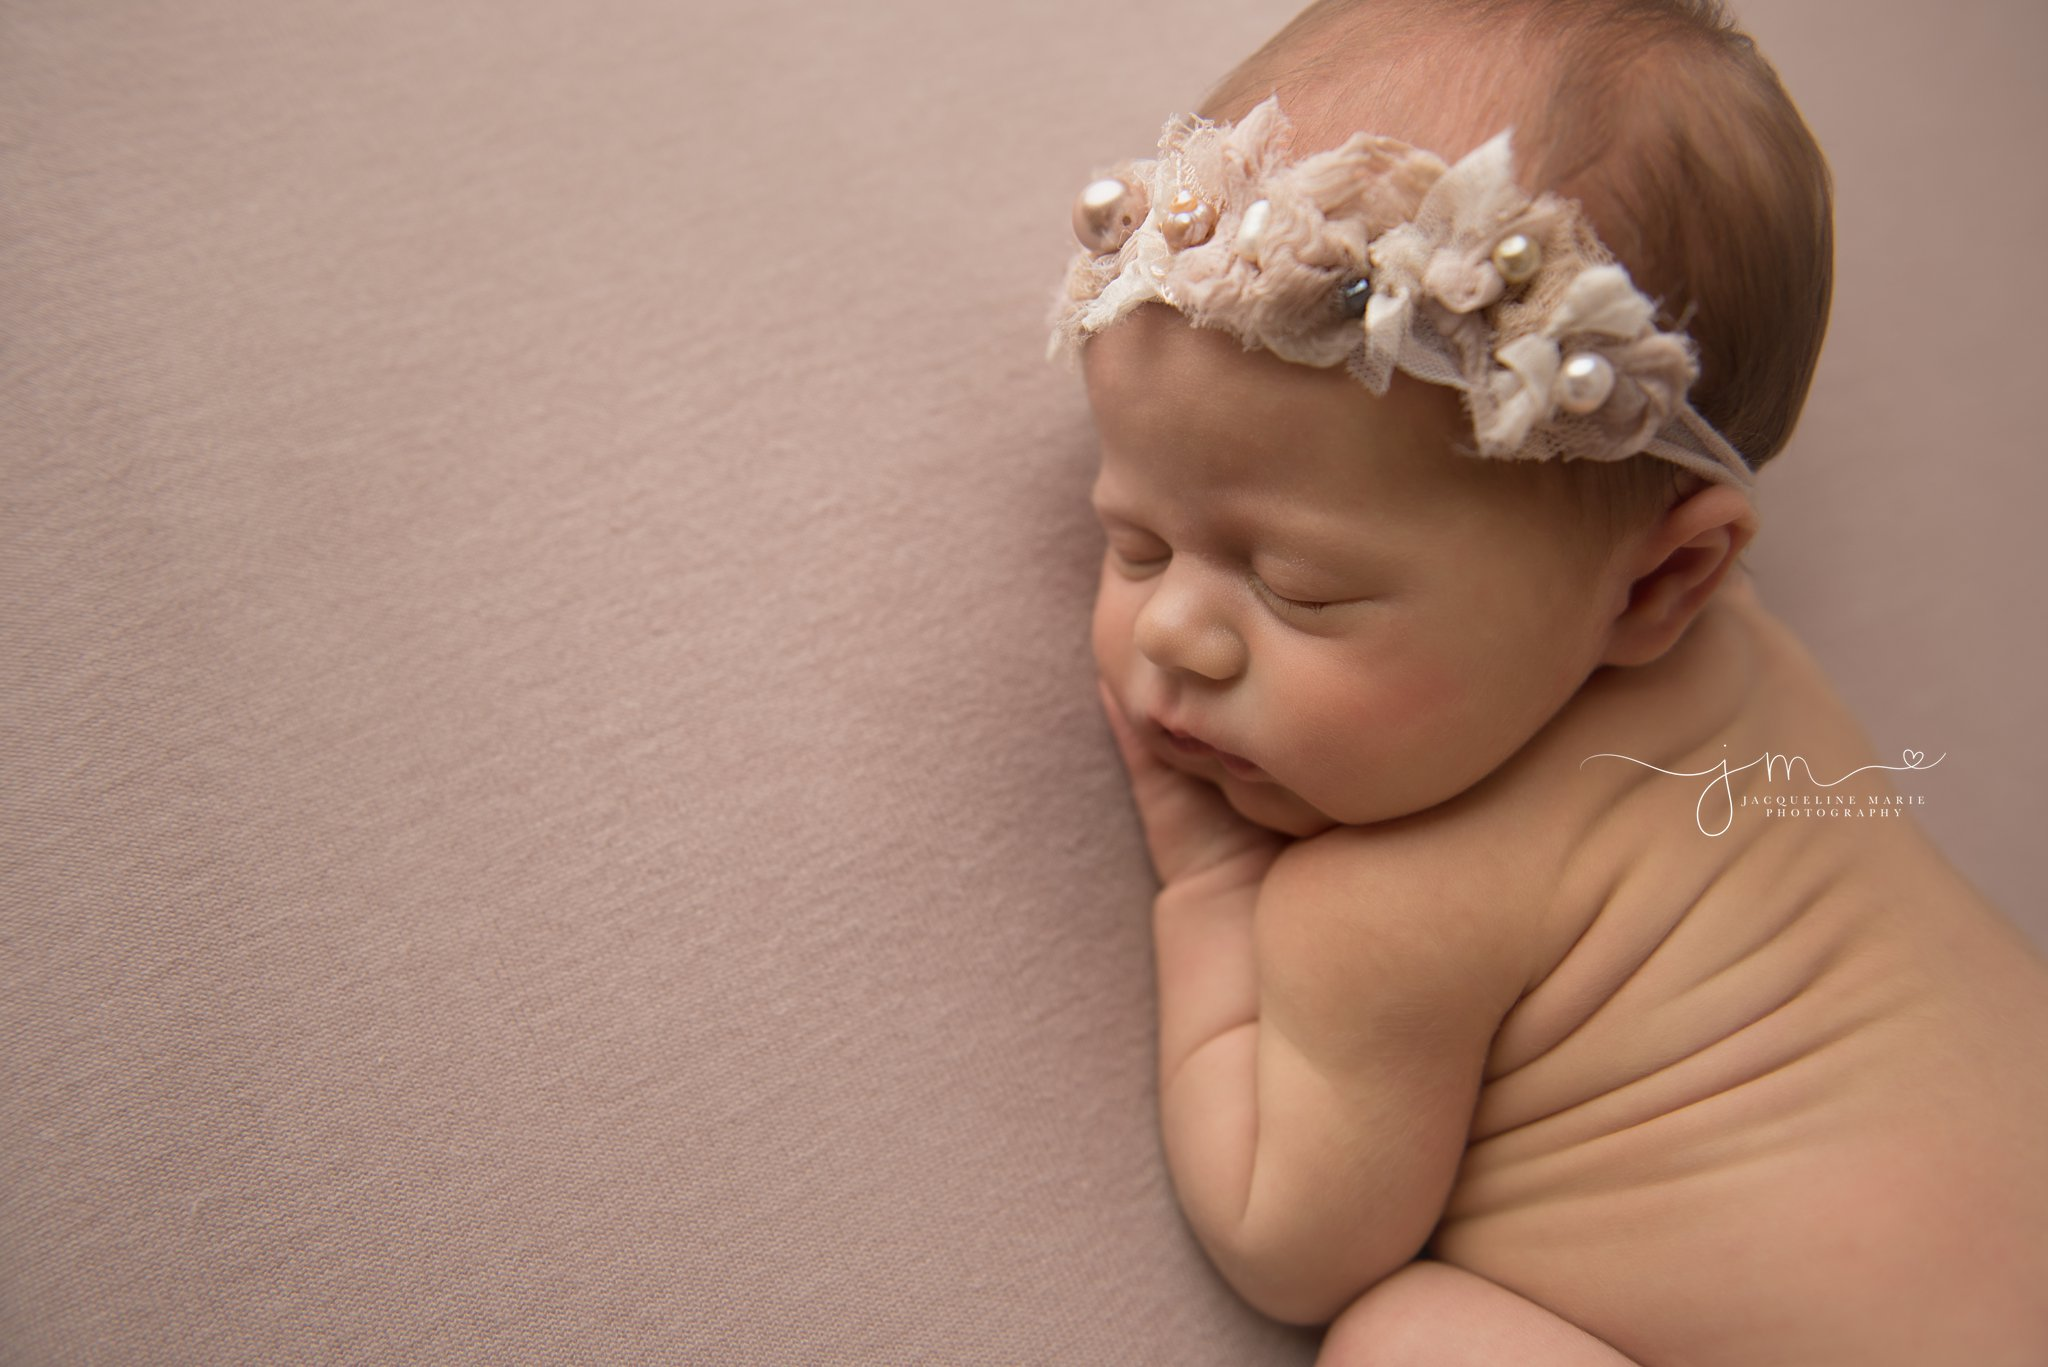 columbus ohio newborn photographer features baby girl sleeping in pink pearl headband for newborn pictures